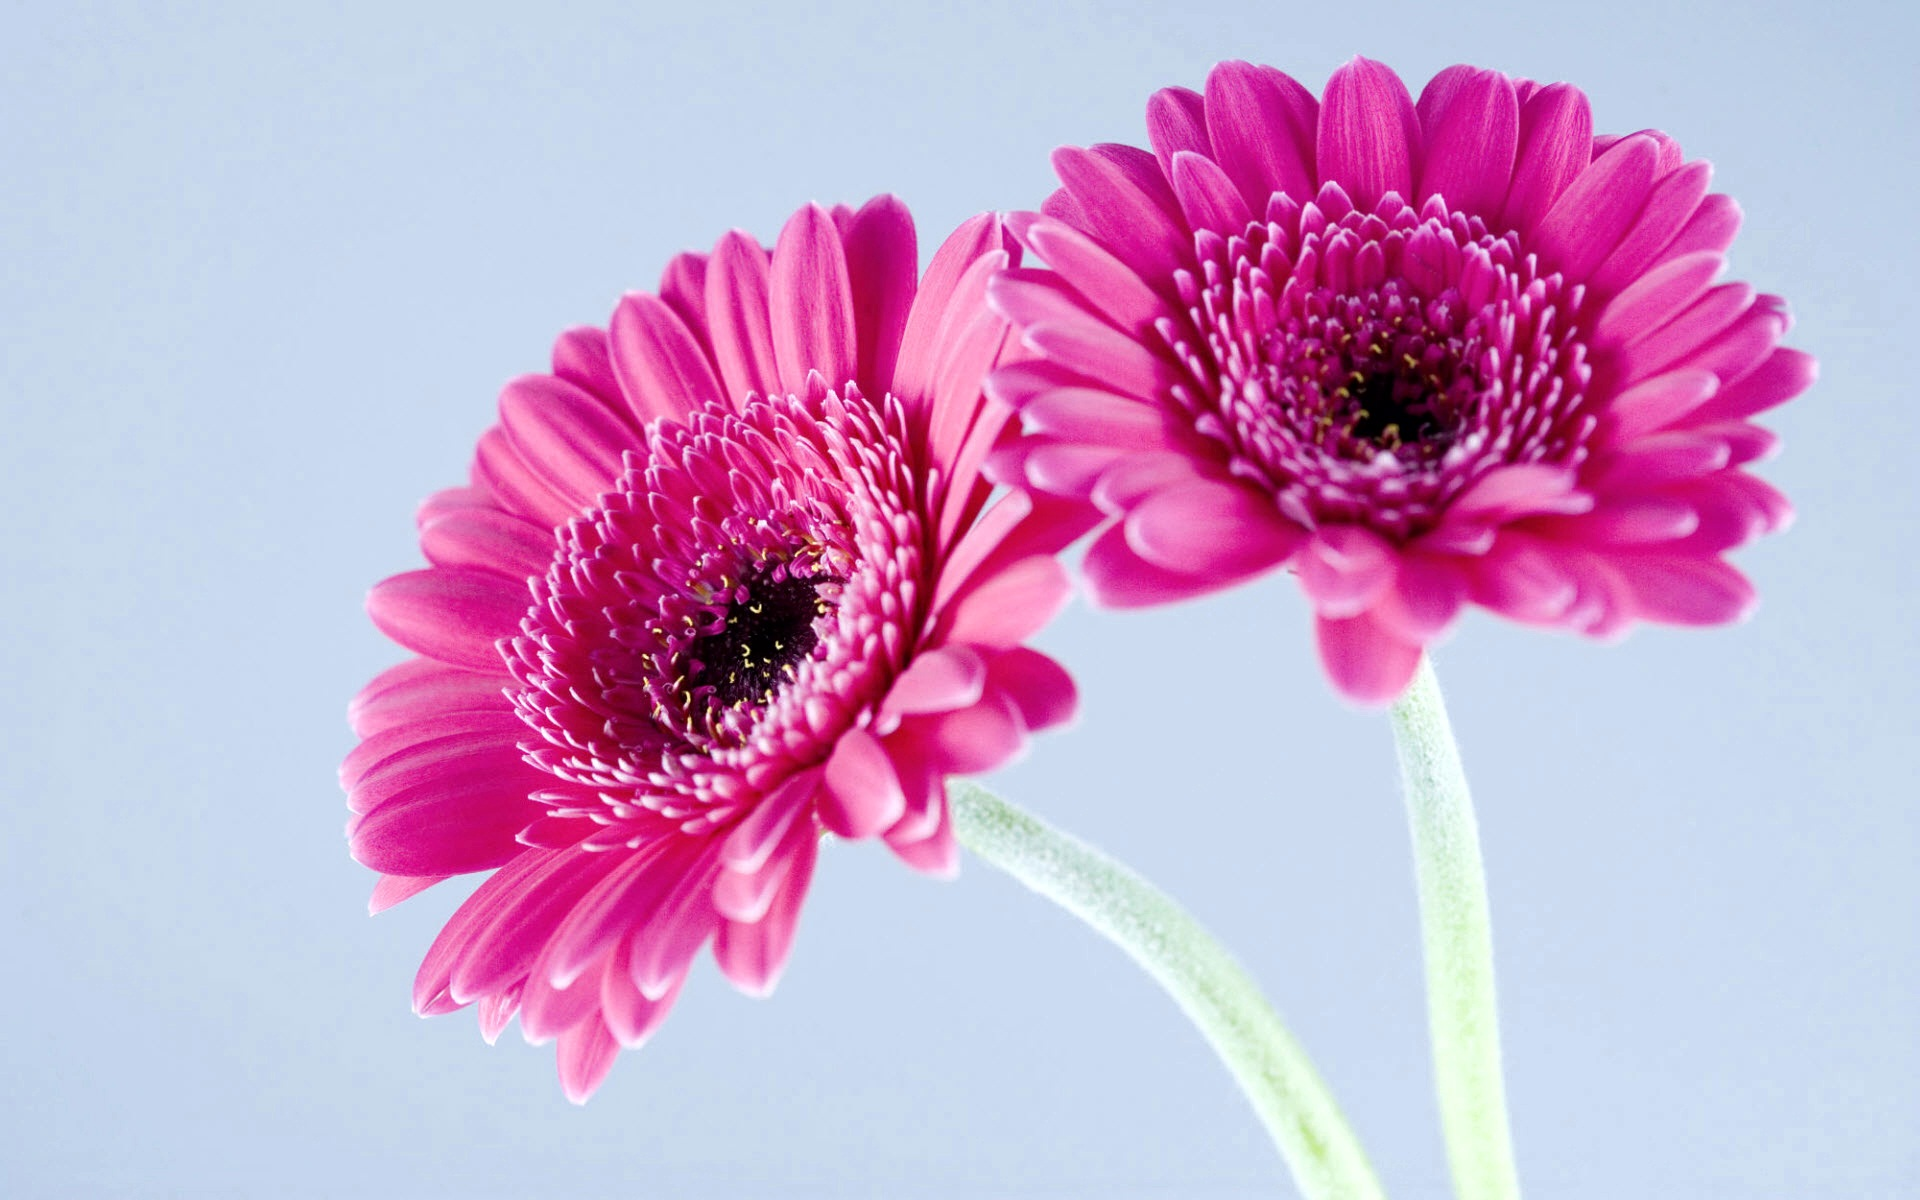 Purple Gerbera Daisies Wallpapers HD Wallpapers 1920x1200